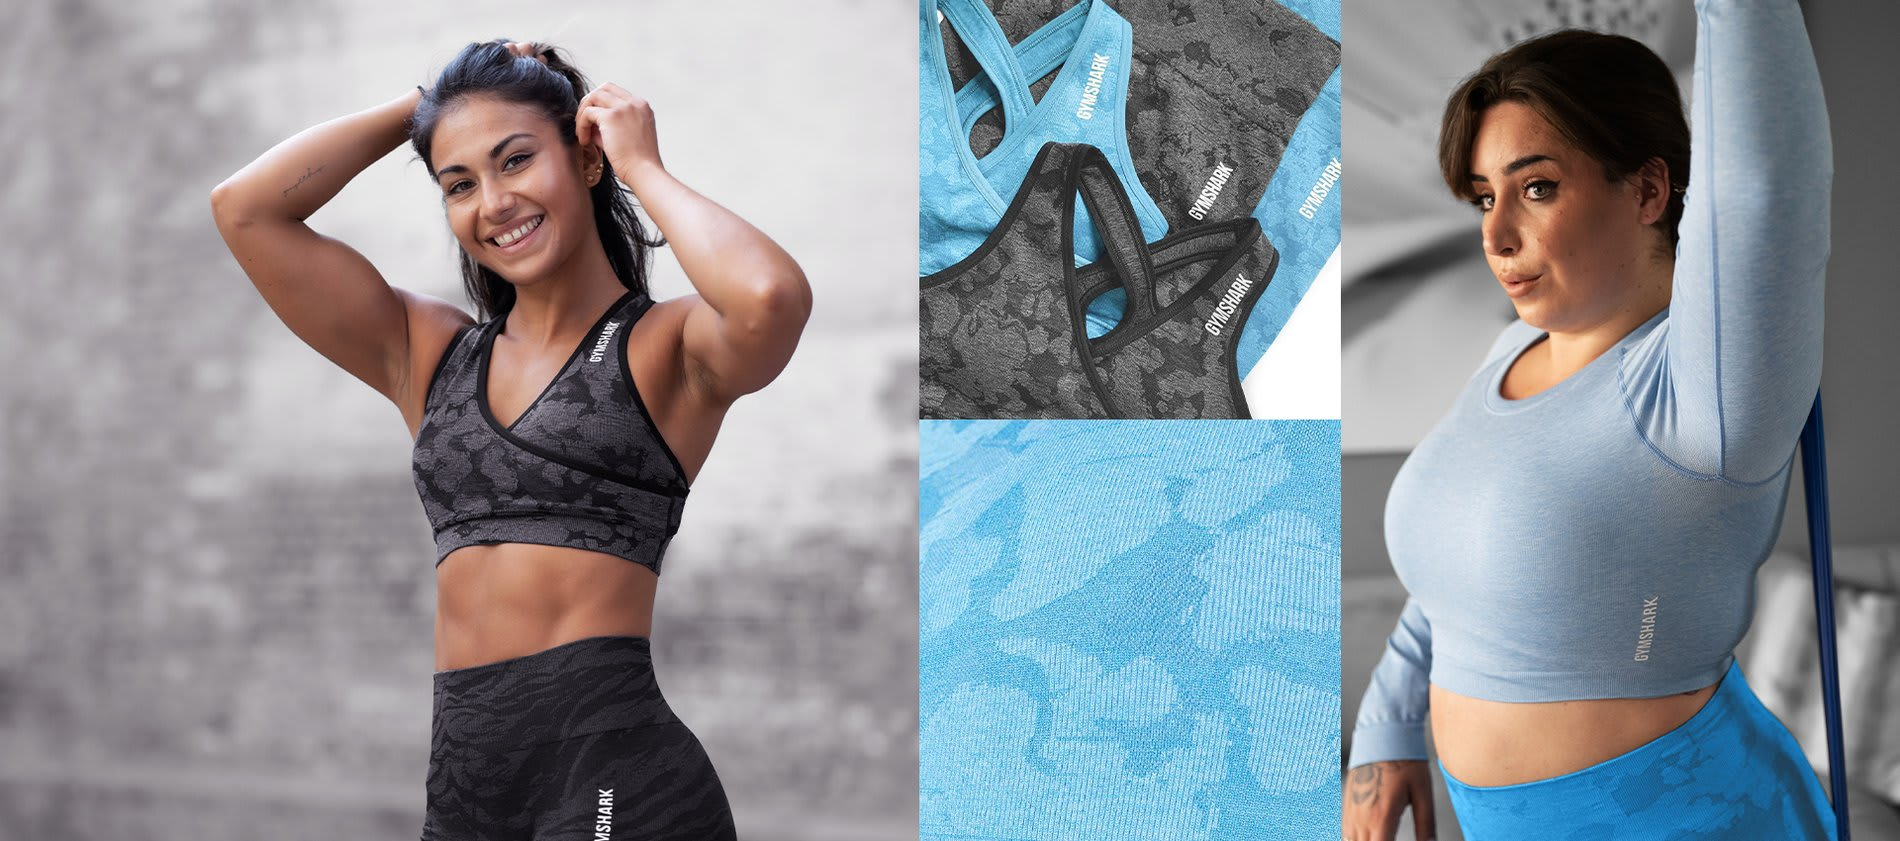 Collage featuring female athletes wearing the new Adapt Collection and close up showing off the new designs and colours.